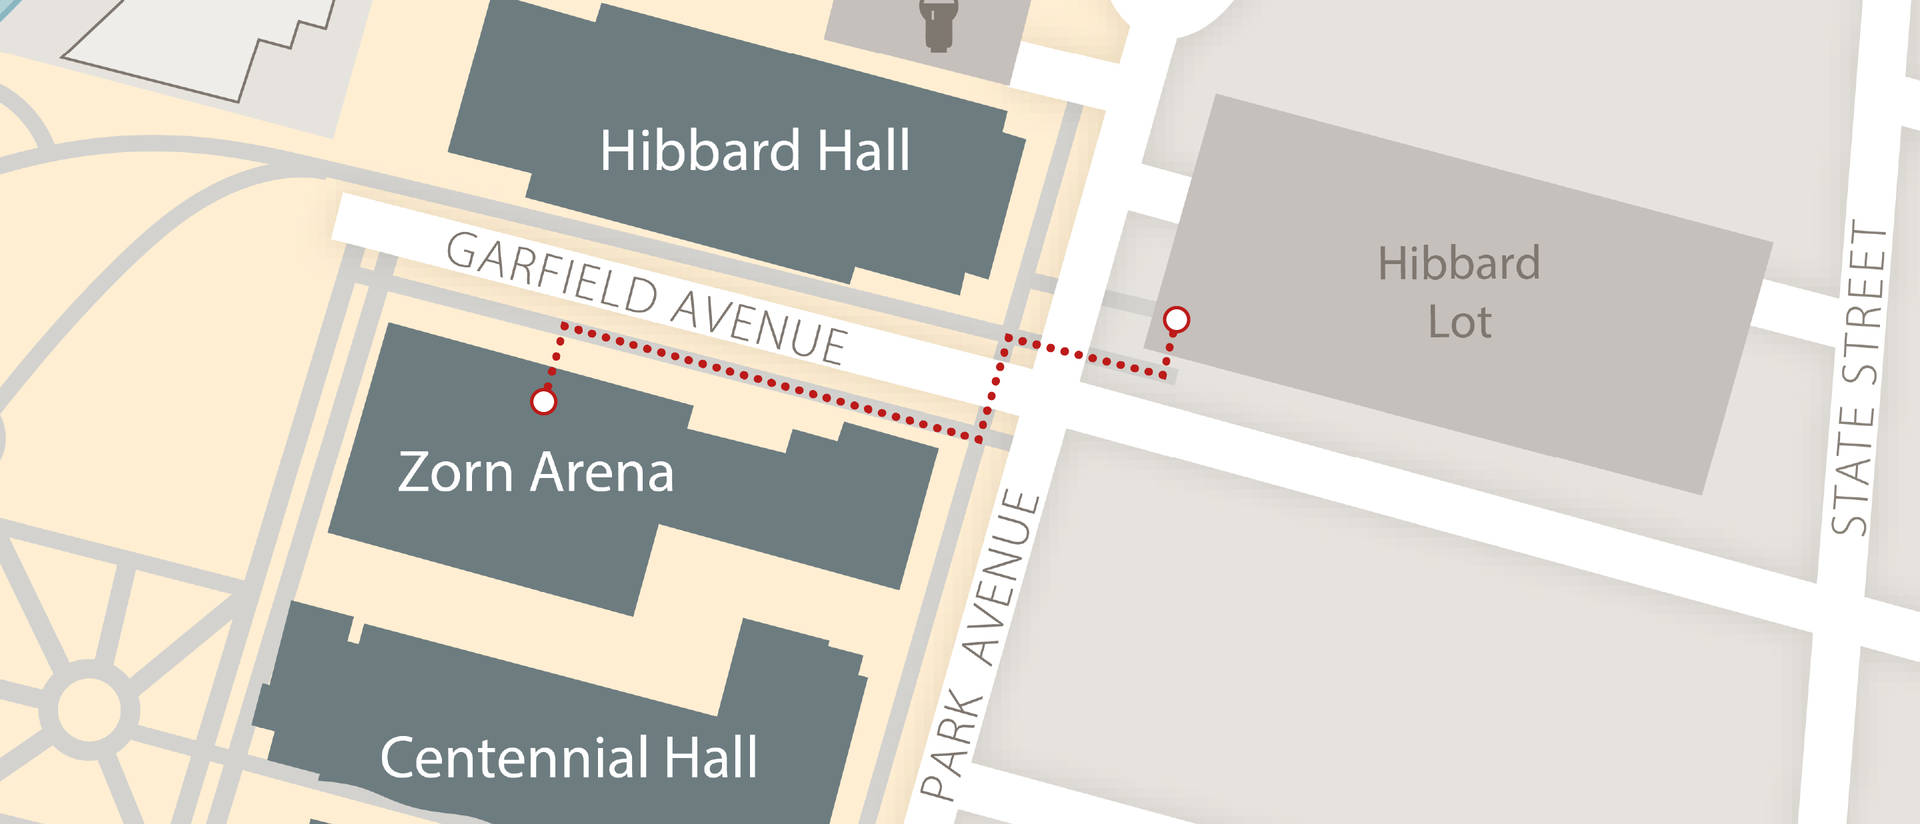 A map showing the short distance from the Hibbard parking lot to Zorn arena.